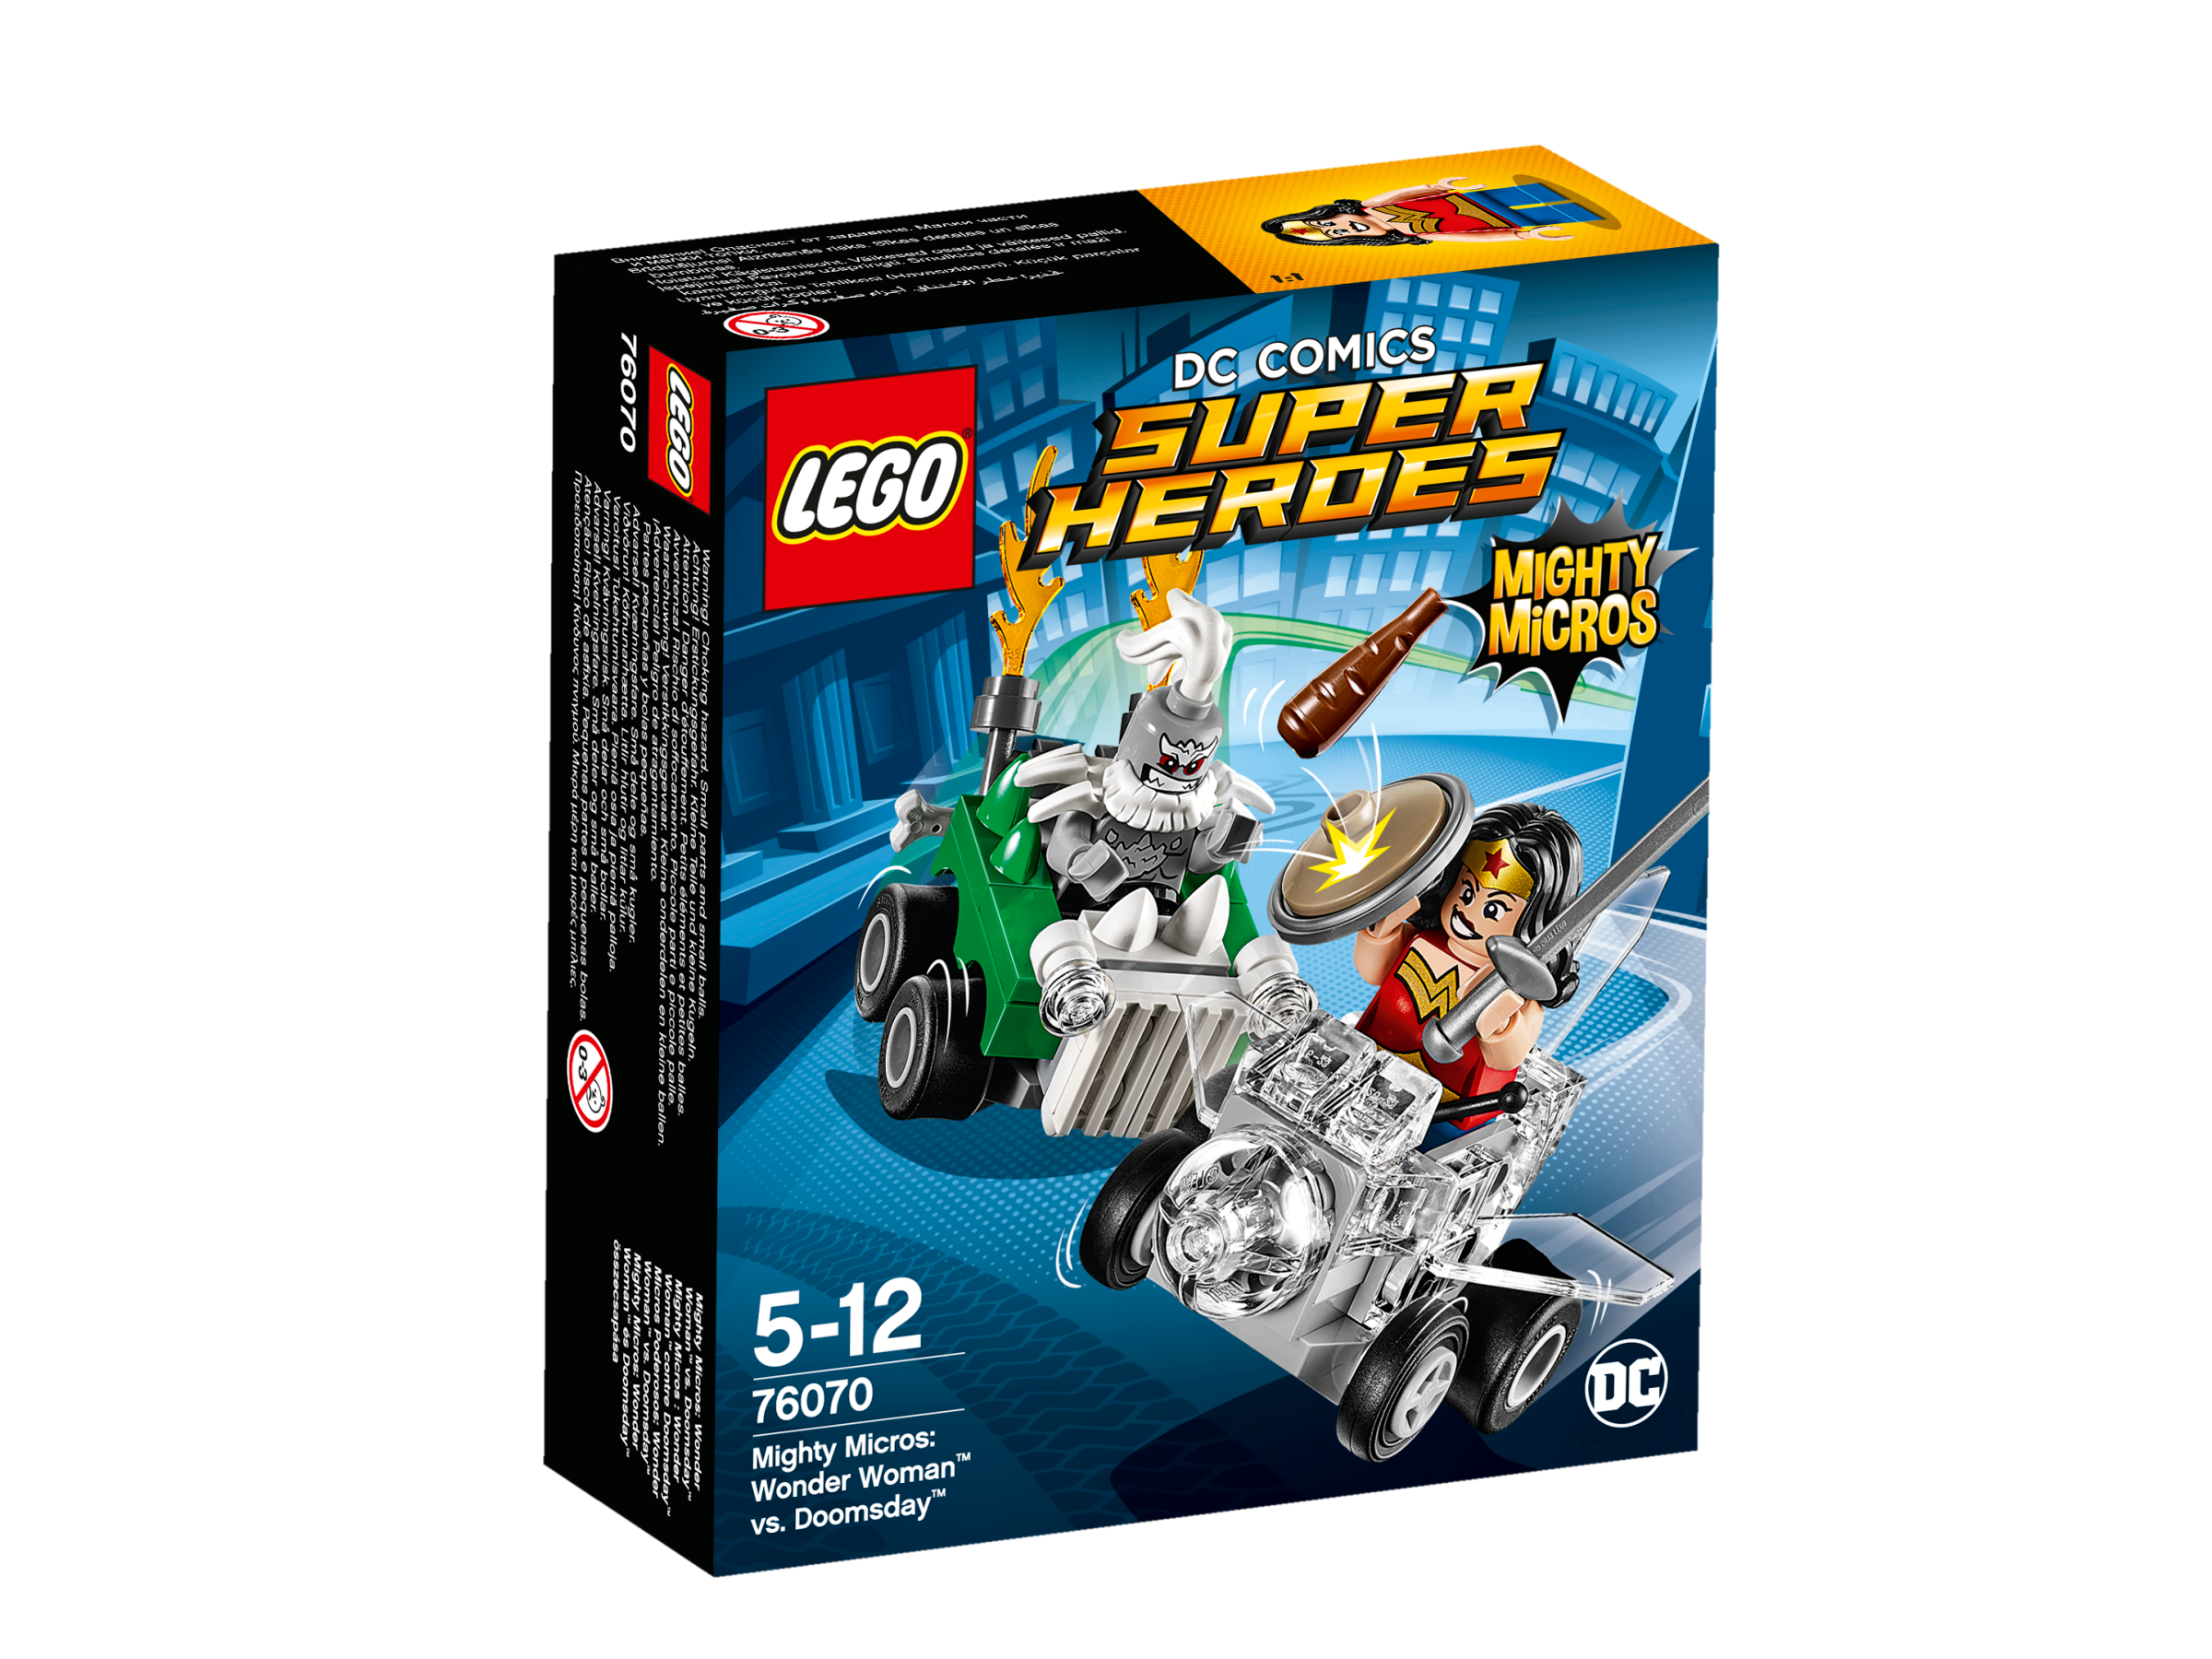 ighty Micros: Wonder Woman mod Doomsday fra LEGO Super Heroes DC